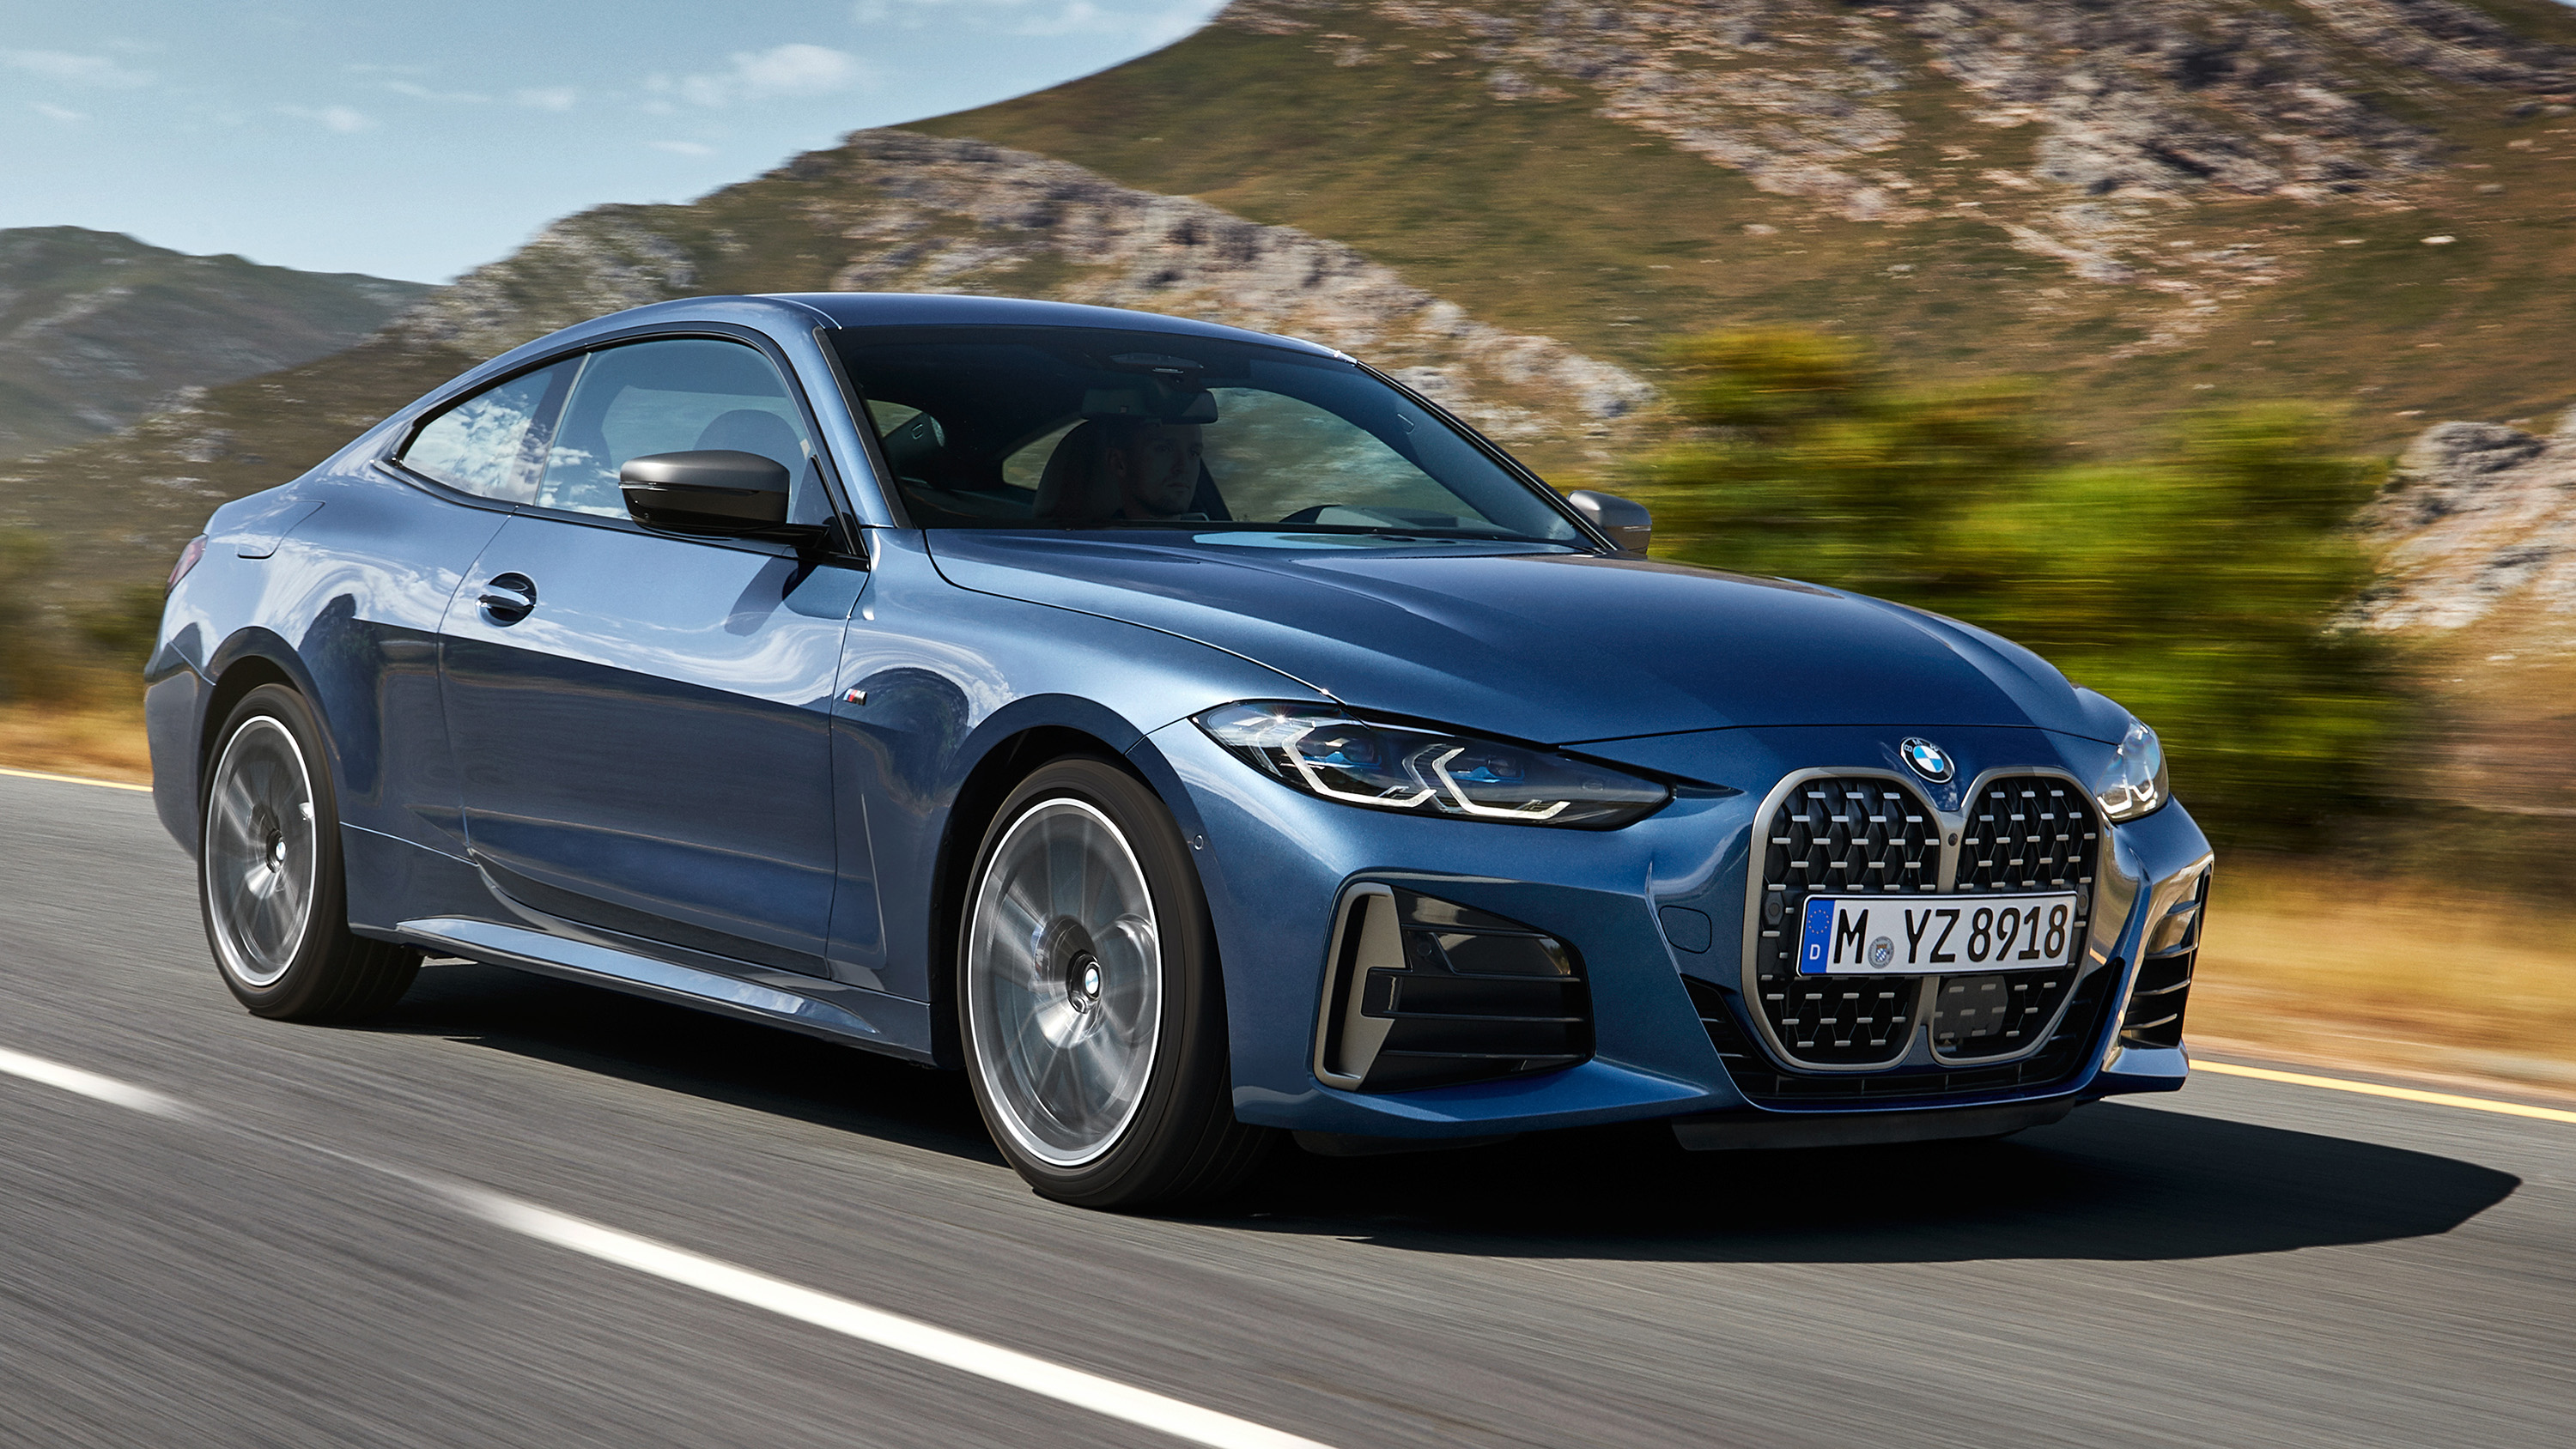 2020 Bmw 4 Series Coupe Prices Specifications And Performance Buyacar